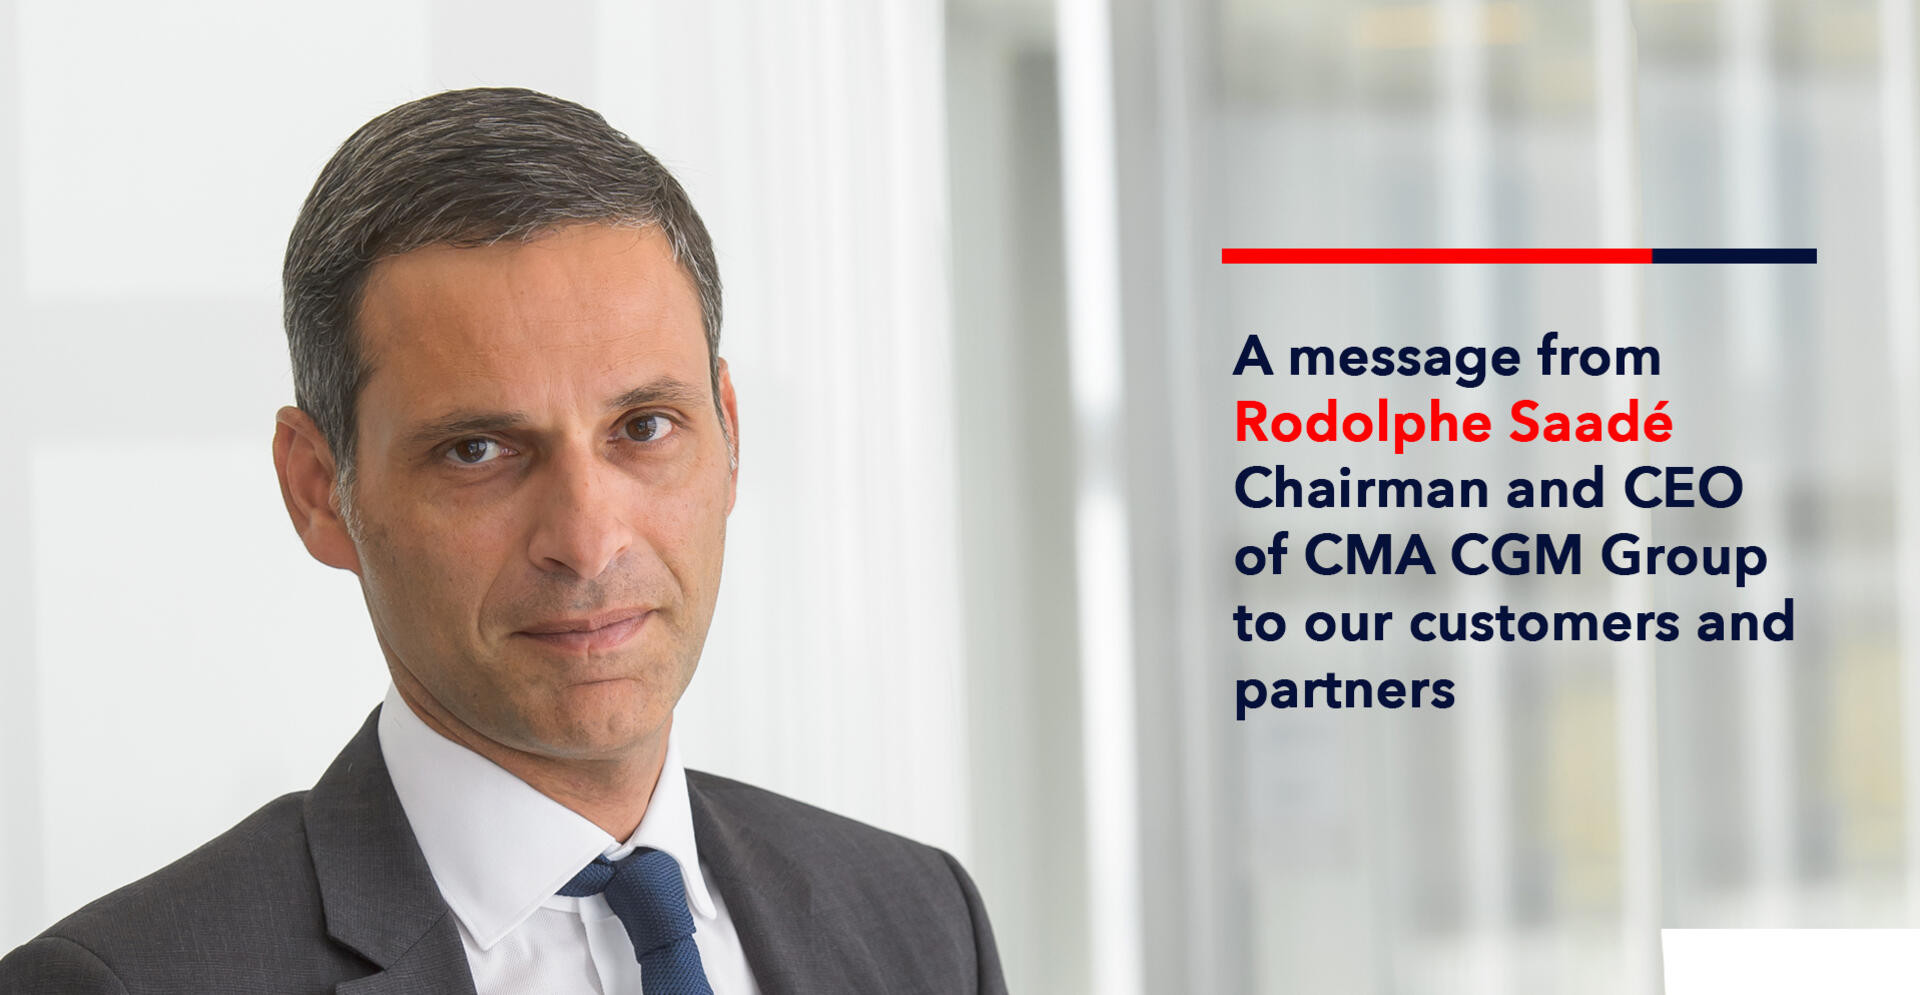 A message from our Chairman and CEO Rodolphe Saadé